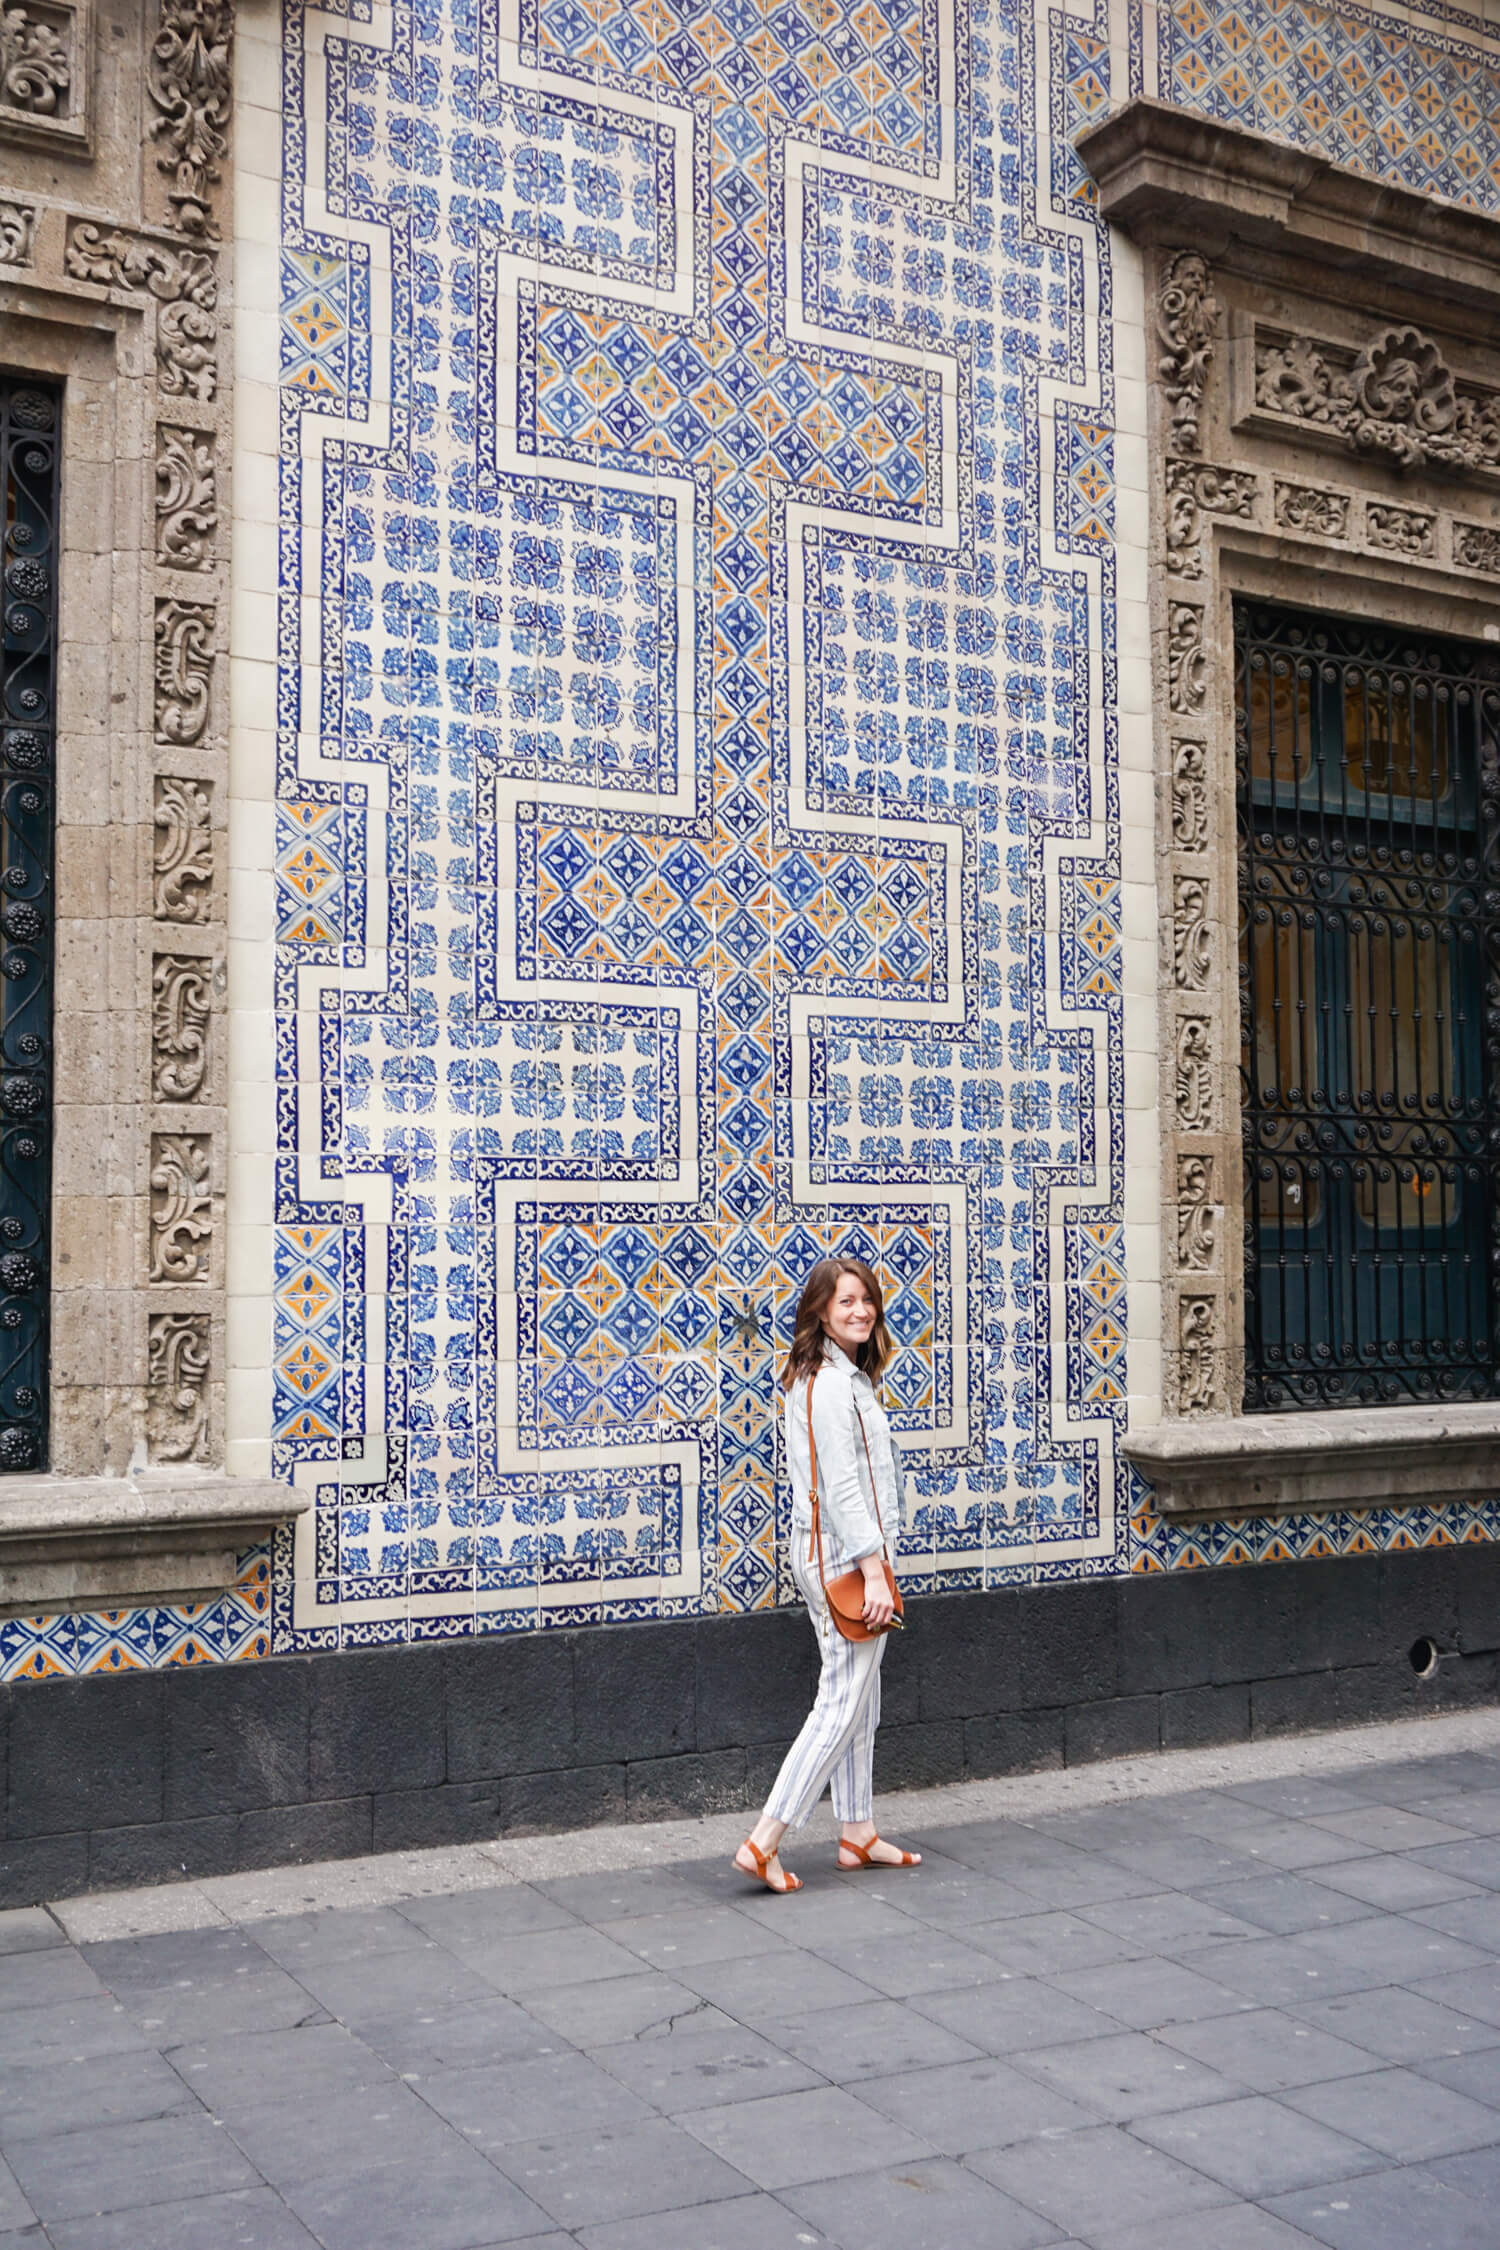 Visiting mexico city what to see eat and do and for Casa de azulejos mexico